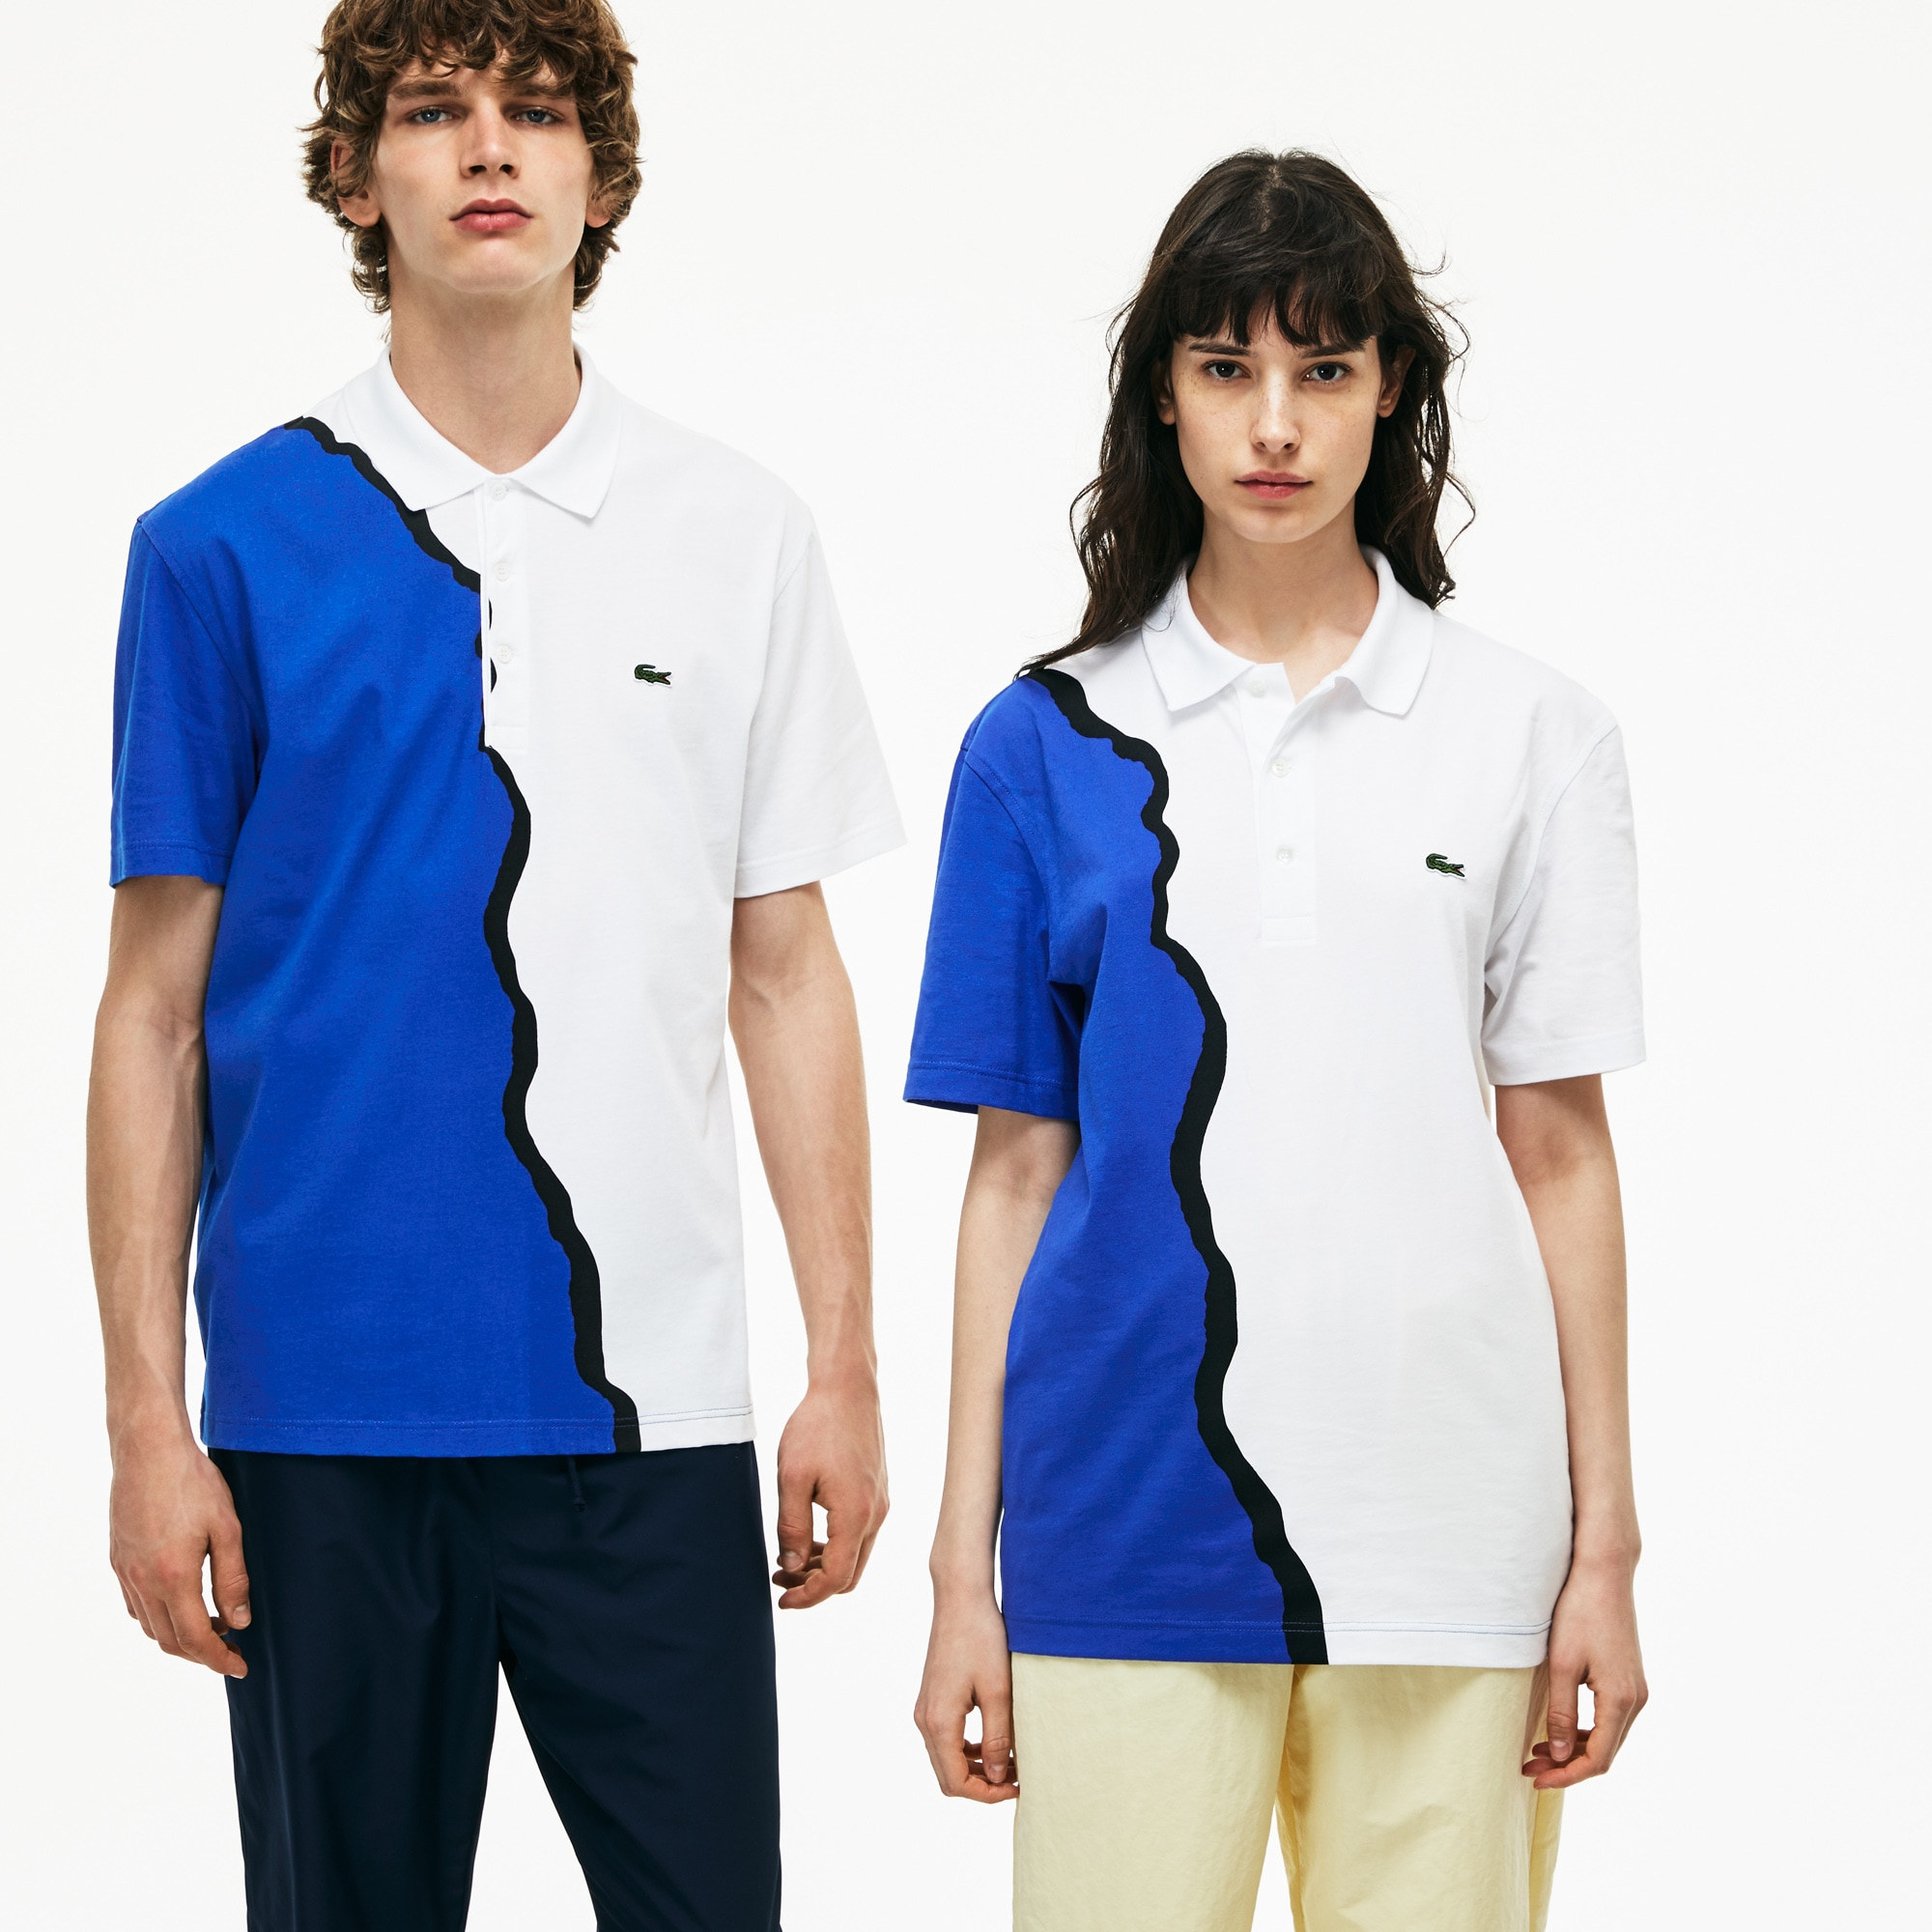 Jersey unisex Lacoste polo, limited edition 85-jarig jubileum